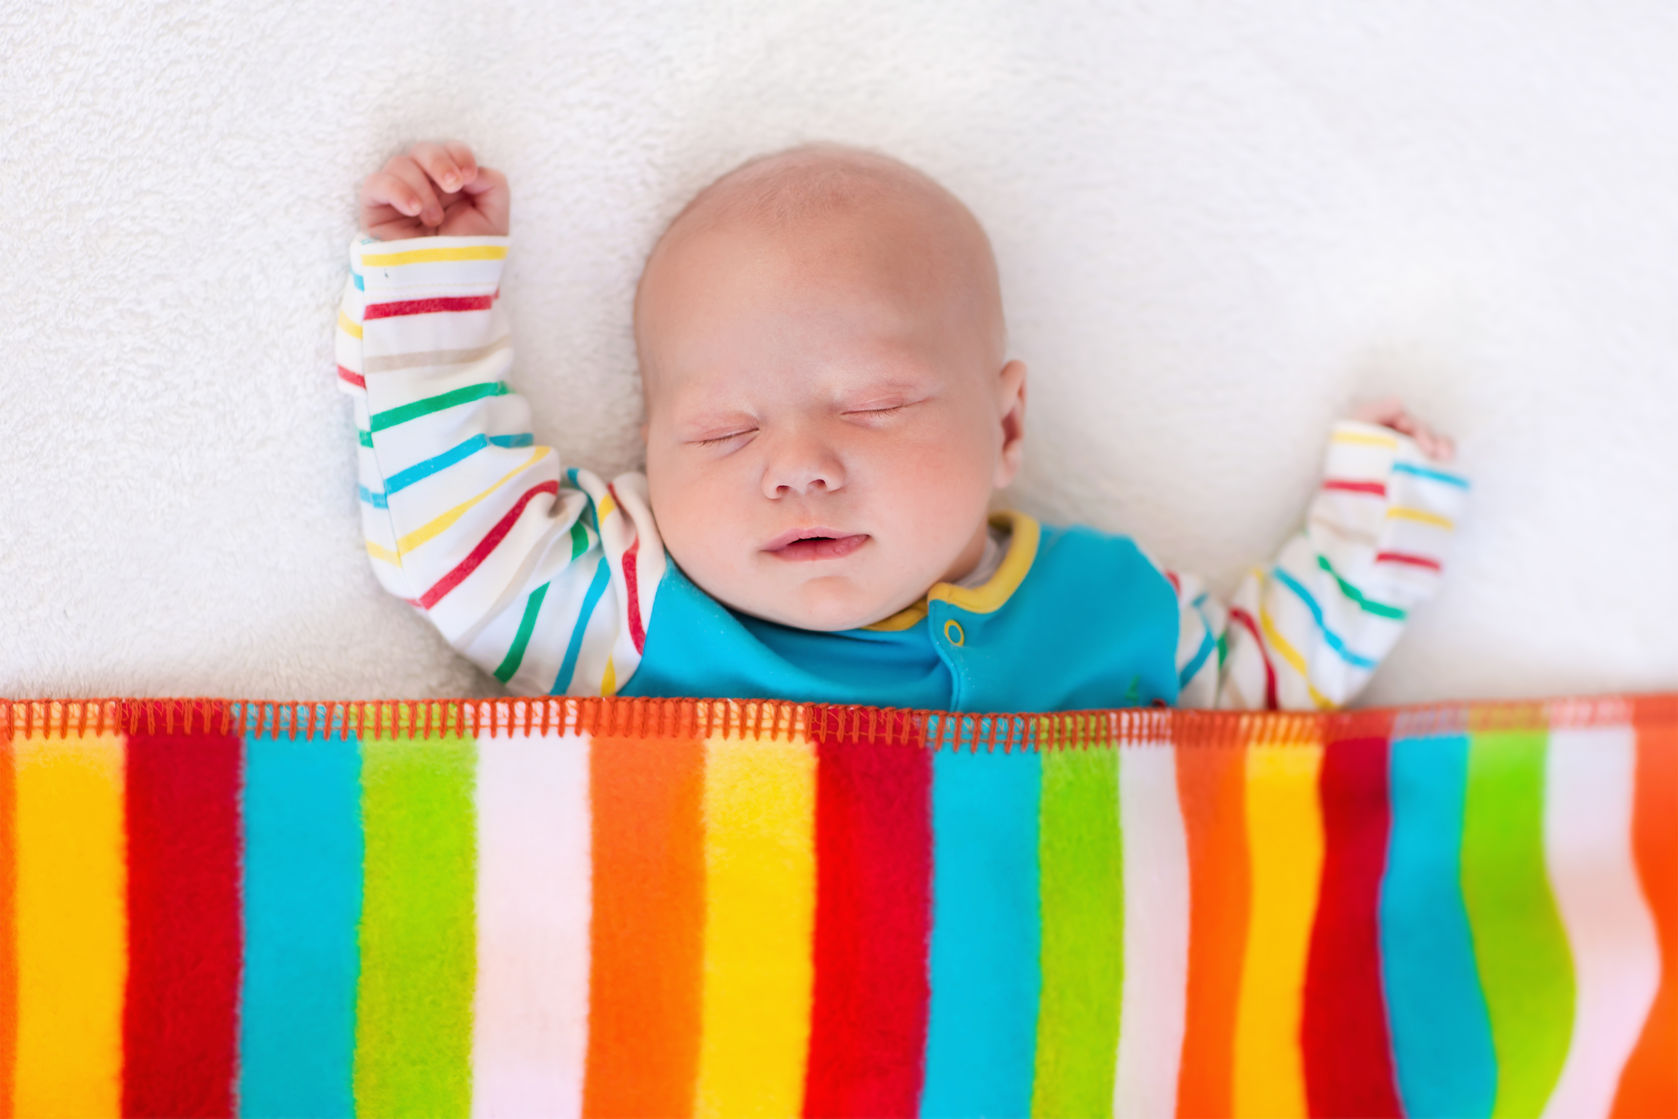 45219774 - newborn baby boy in bed. new born child sleeping under a colorful blanket. children sleep. bedding for kids. infant napping in bed. healthy little kid shortly after birth. clothing for kids.